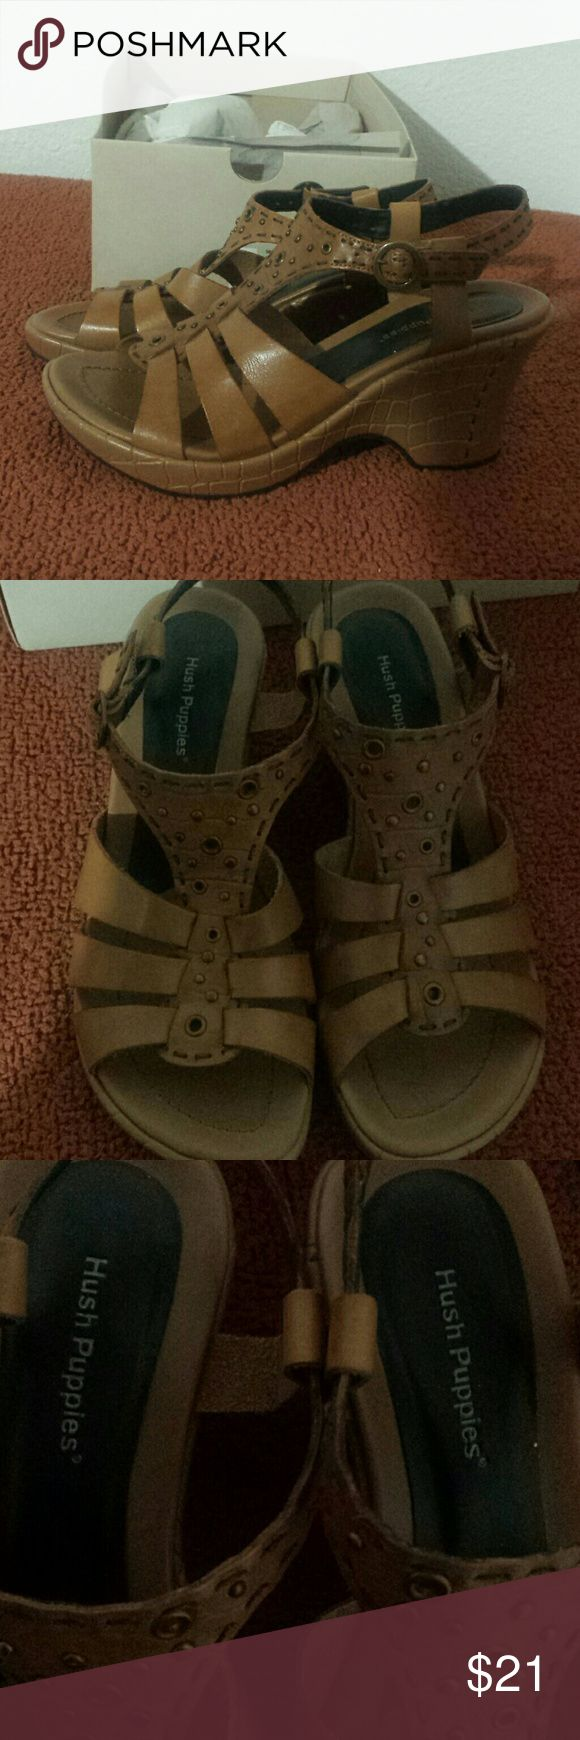 """Hush Puppies Segovia women's size 7 new with box 3"""" heels leather made in brazil Hush Puppies Shoes Sandals"""